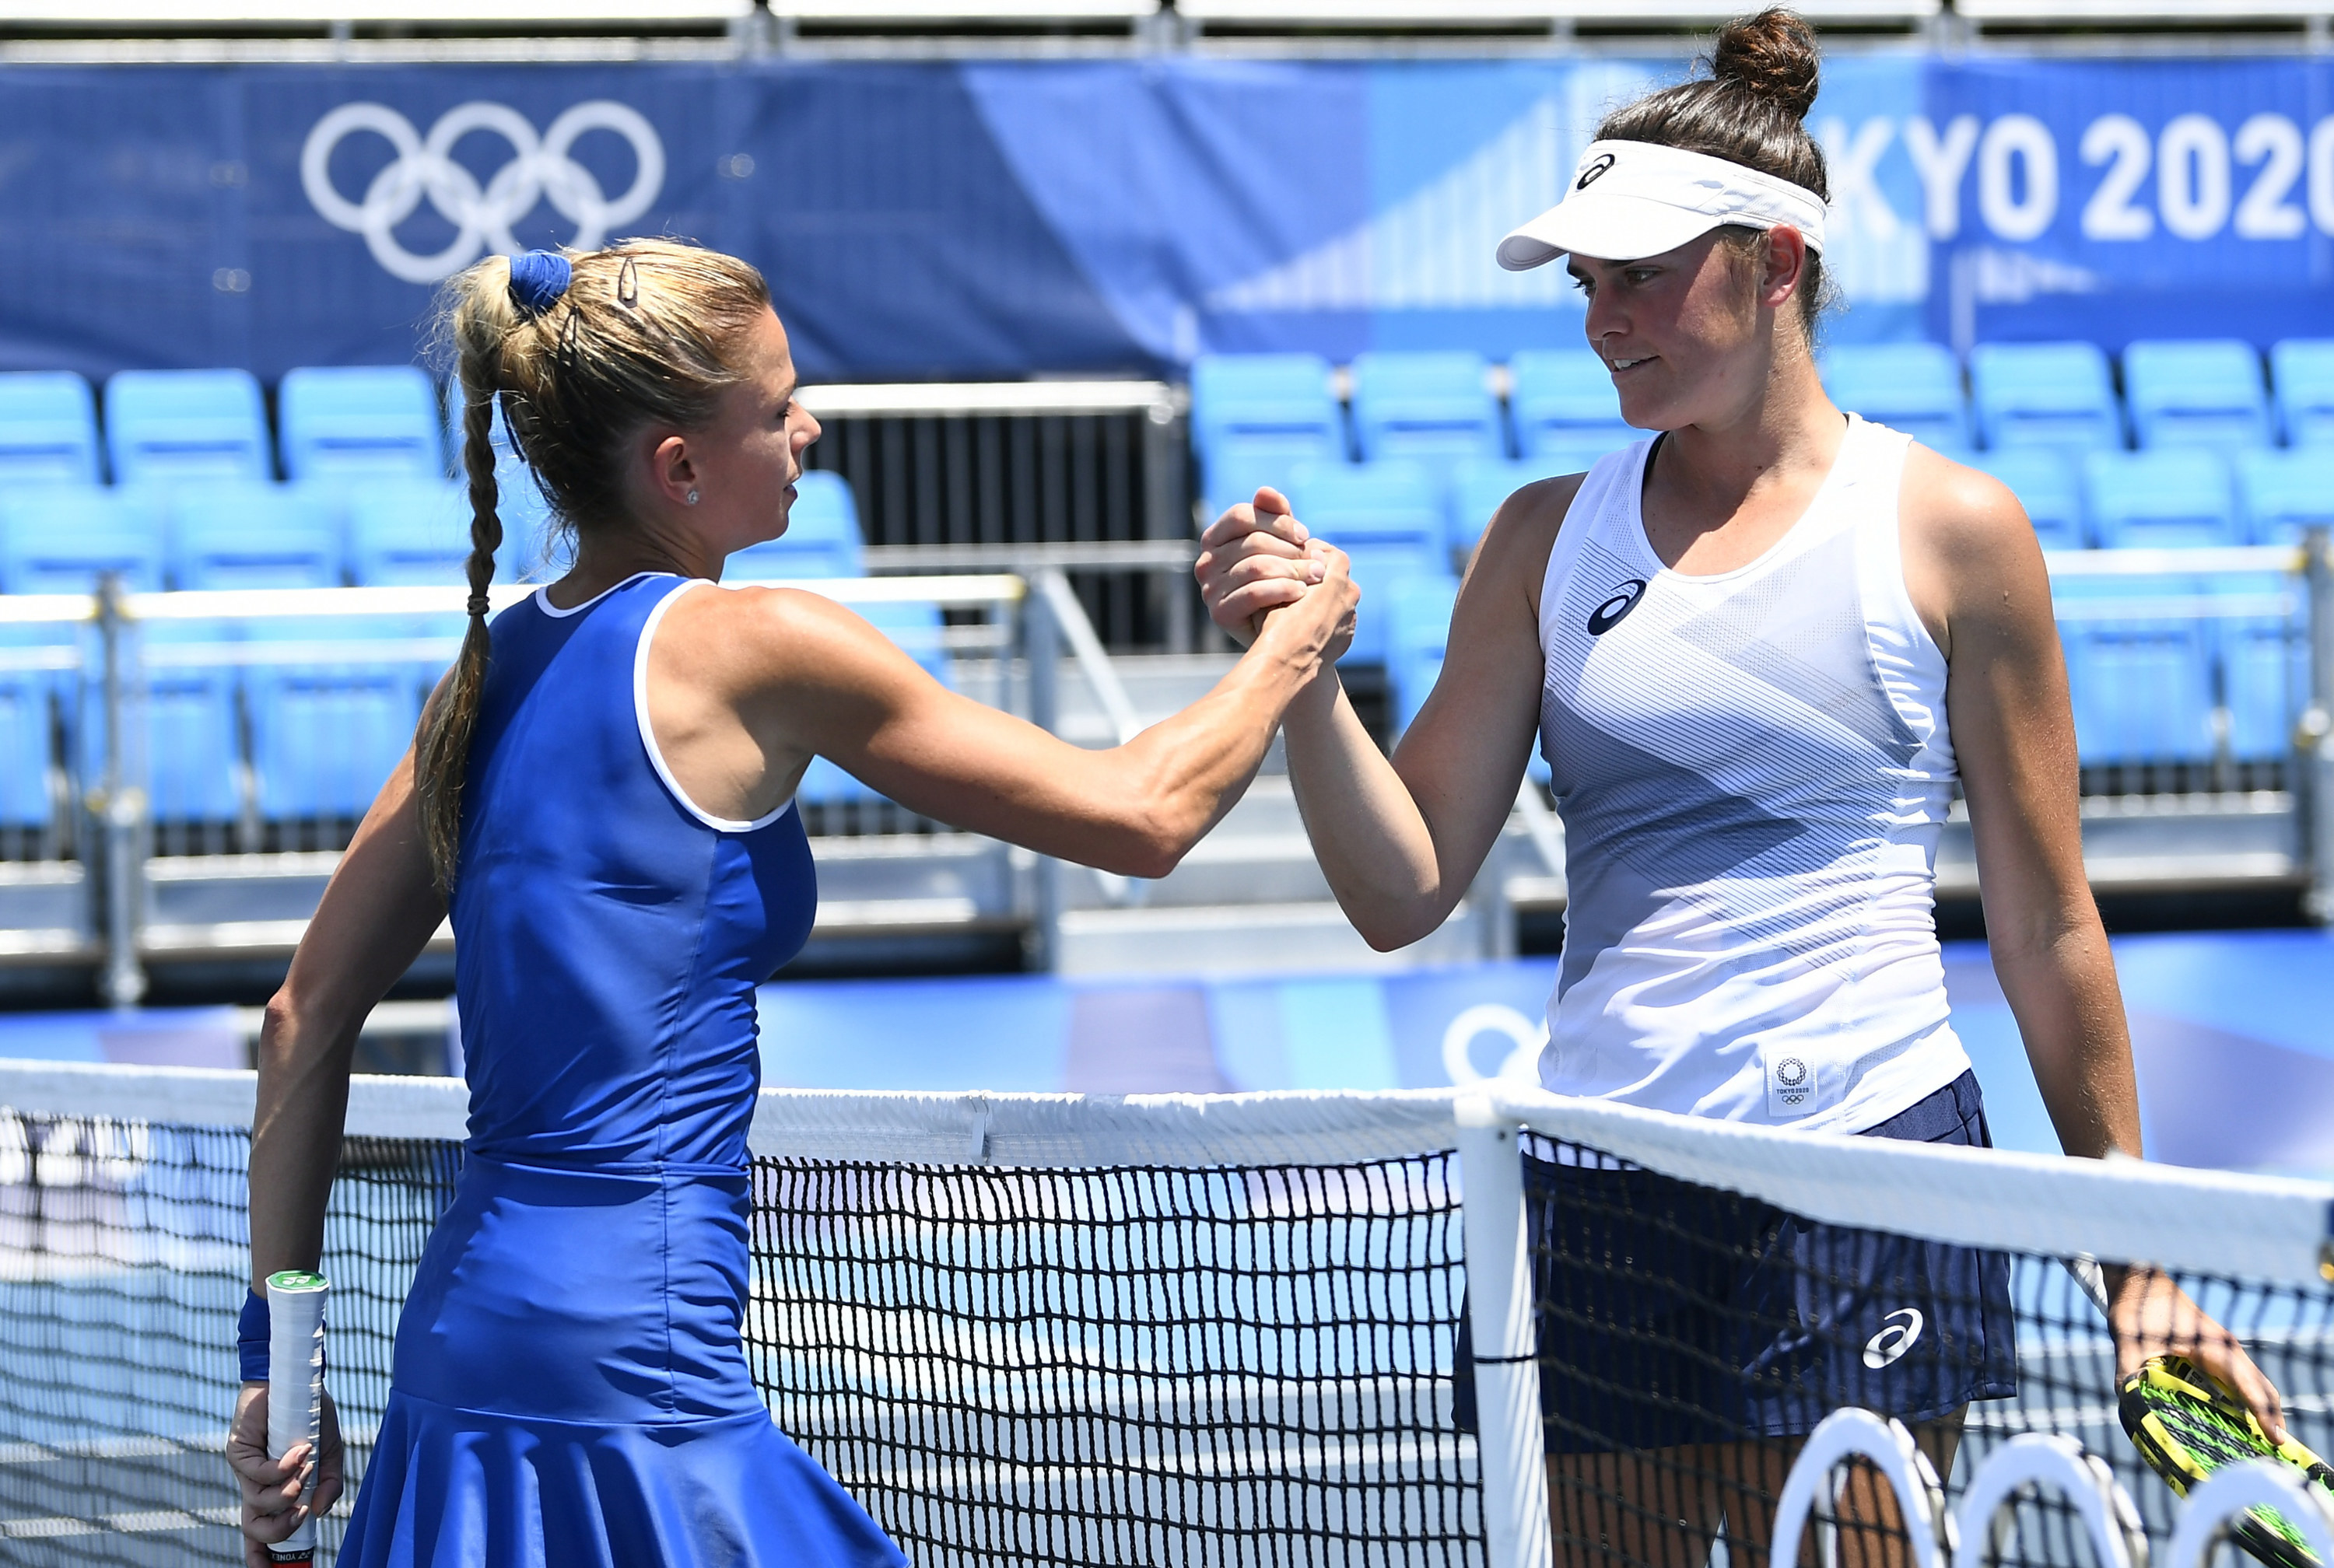 Brady shaking hands with her opponent after losing her match